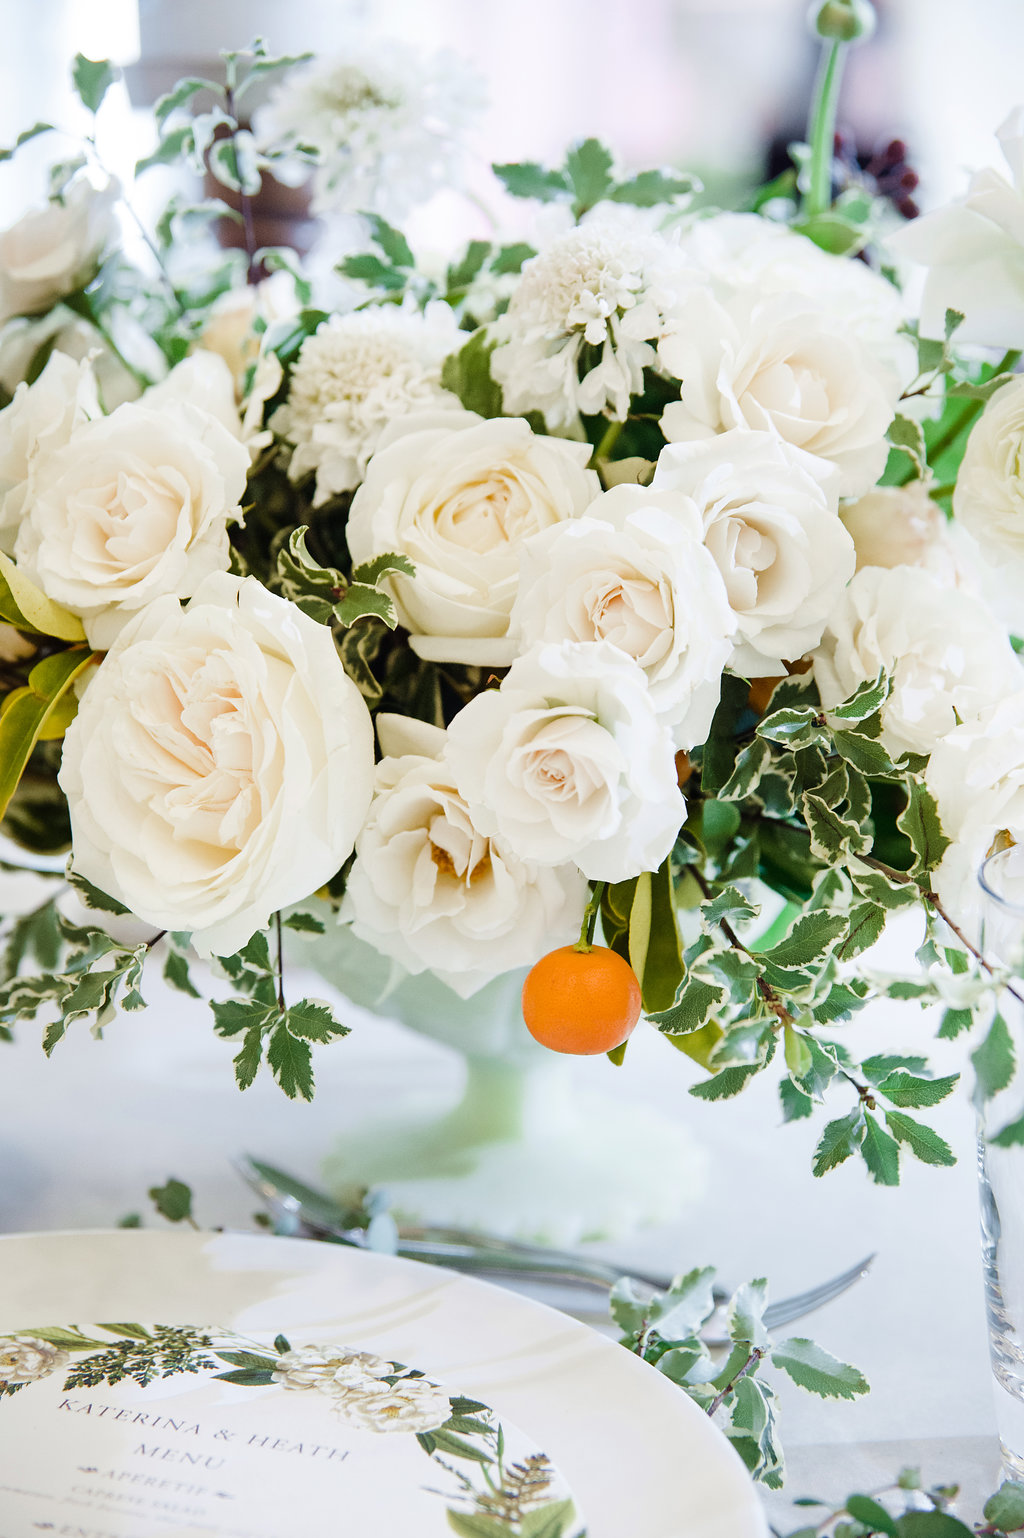 Flowers by Fleur Inc, photo by Amanda Megan Miller Photography